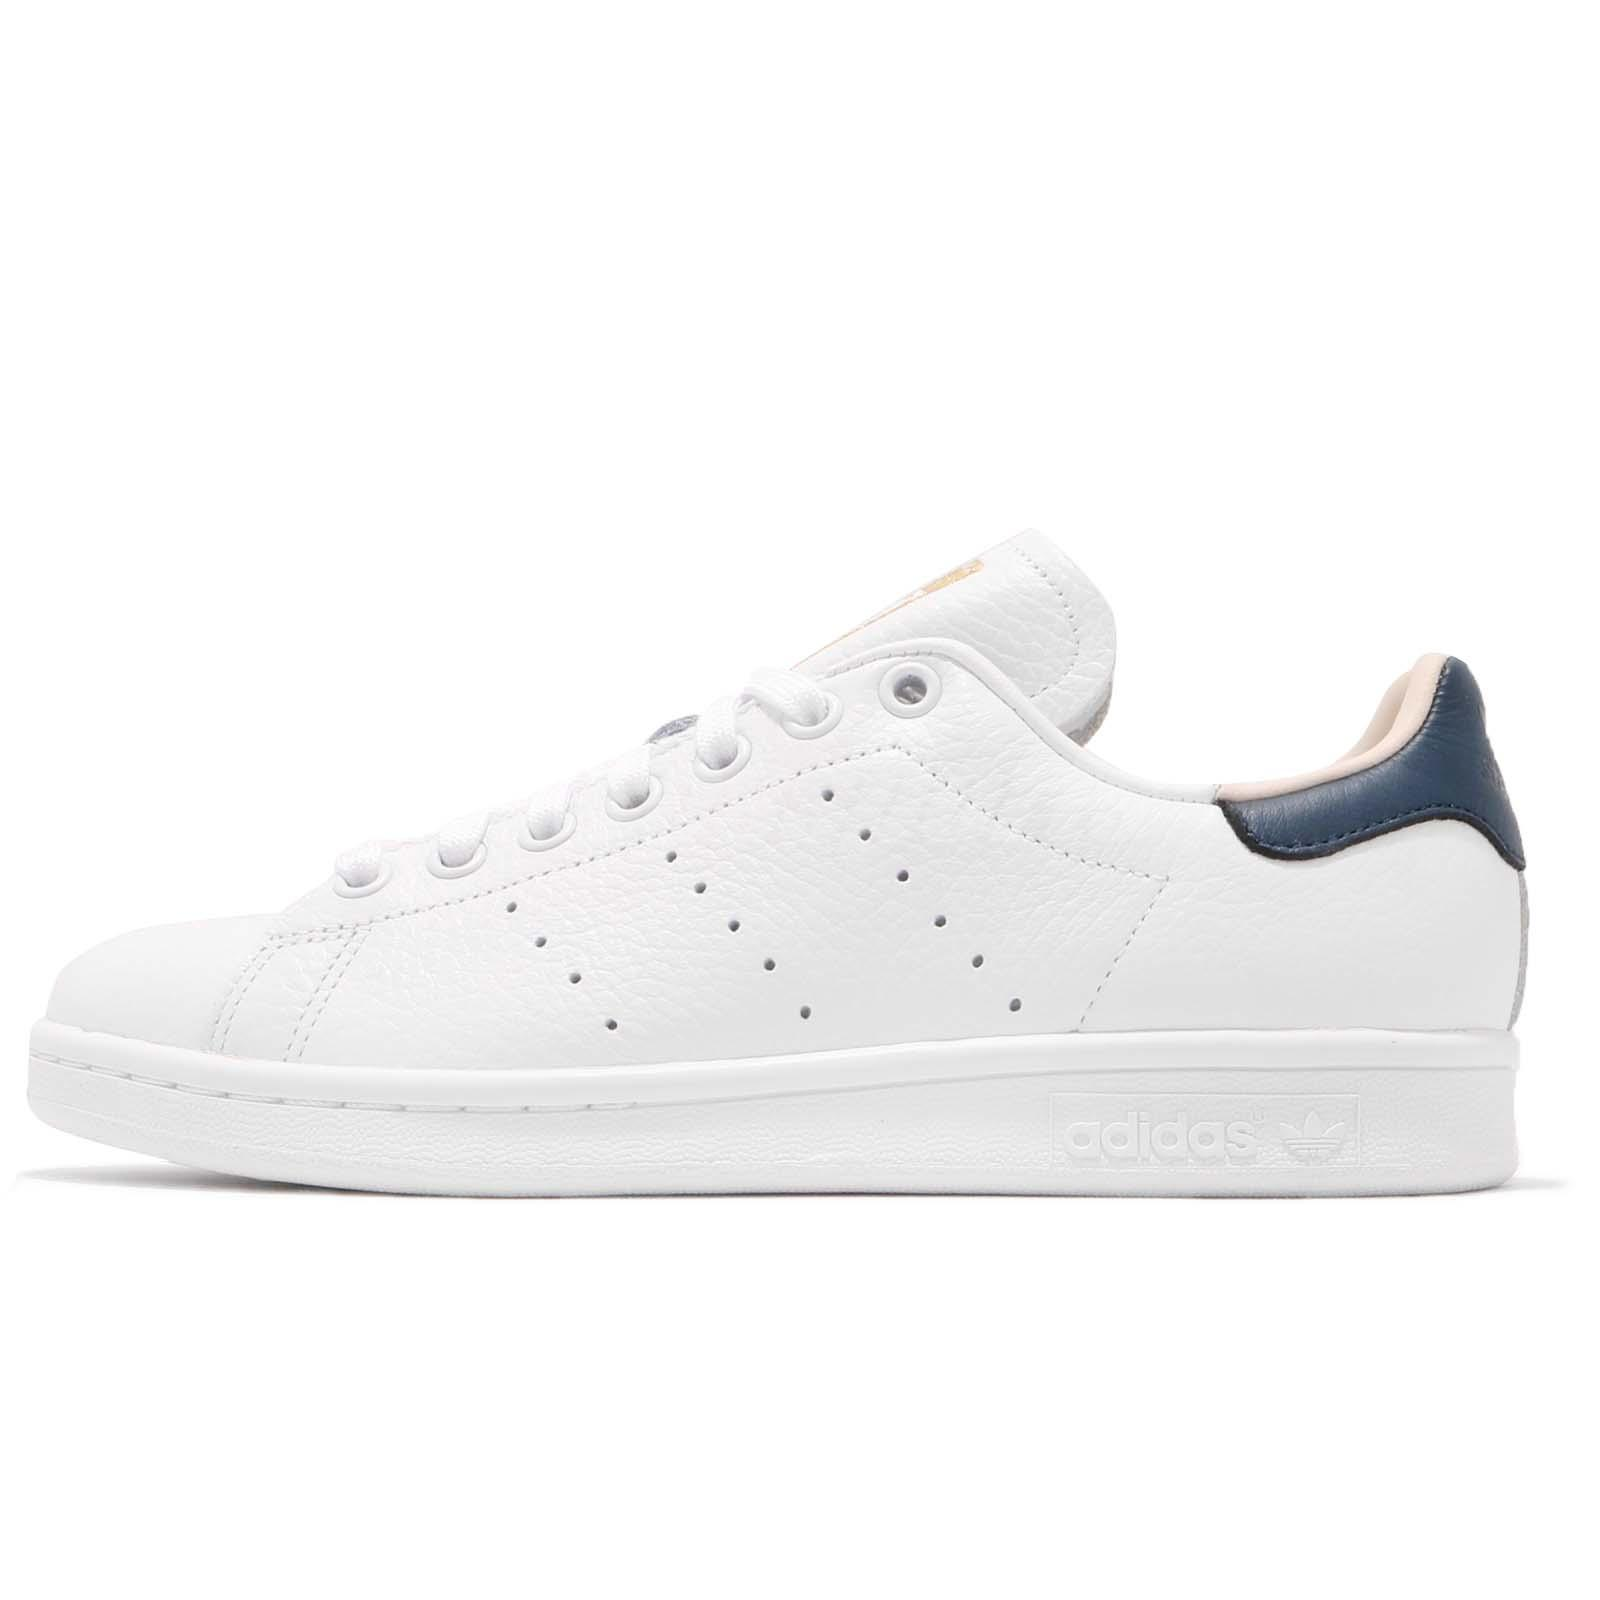 79ecfce0ae741 adidas Originals Stan Smith White Collegiate Navy Men Shoes Sneakers CQ2201